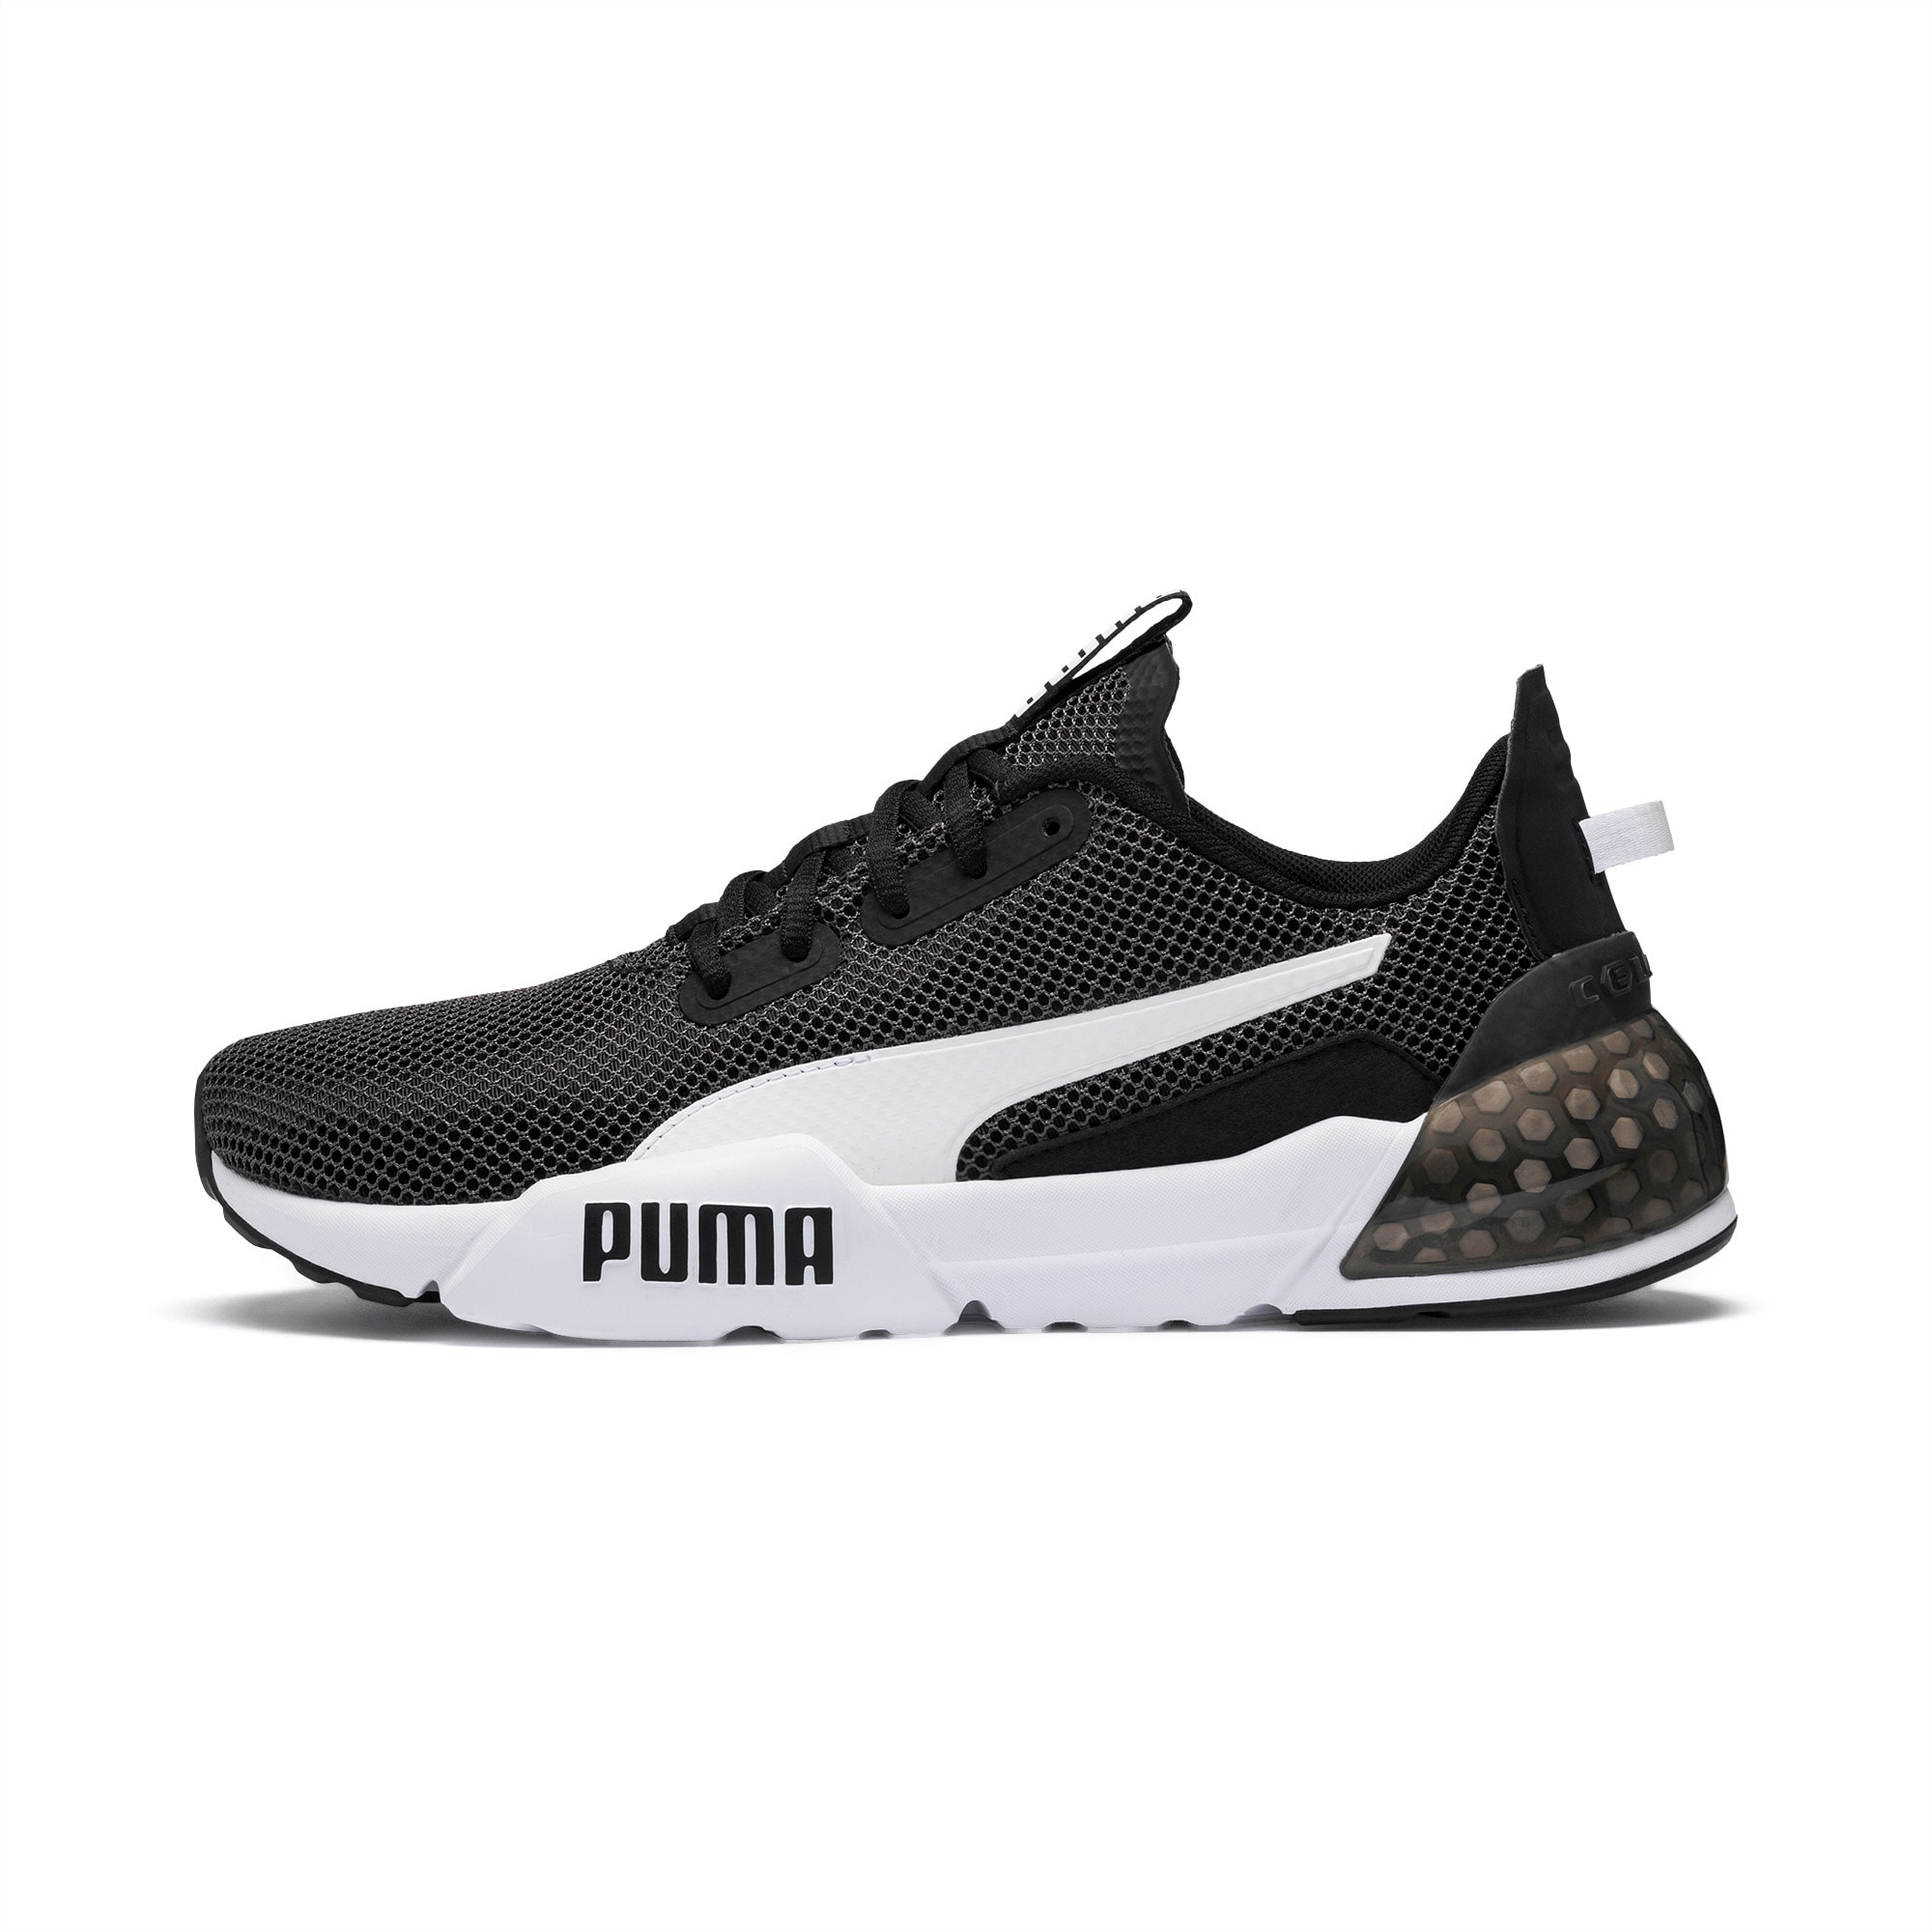 CELL Phase Men's Running Shoes